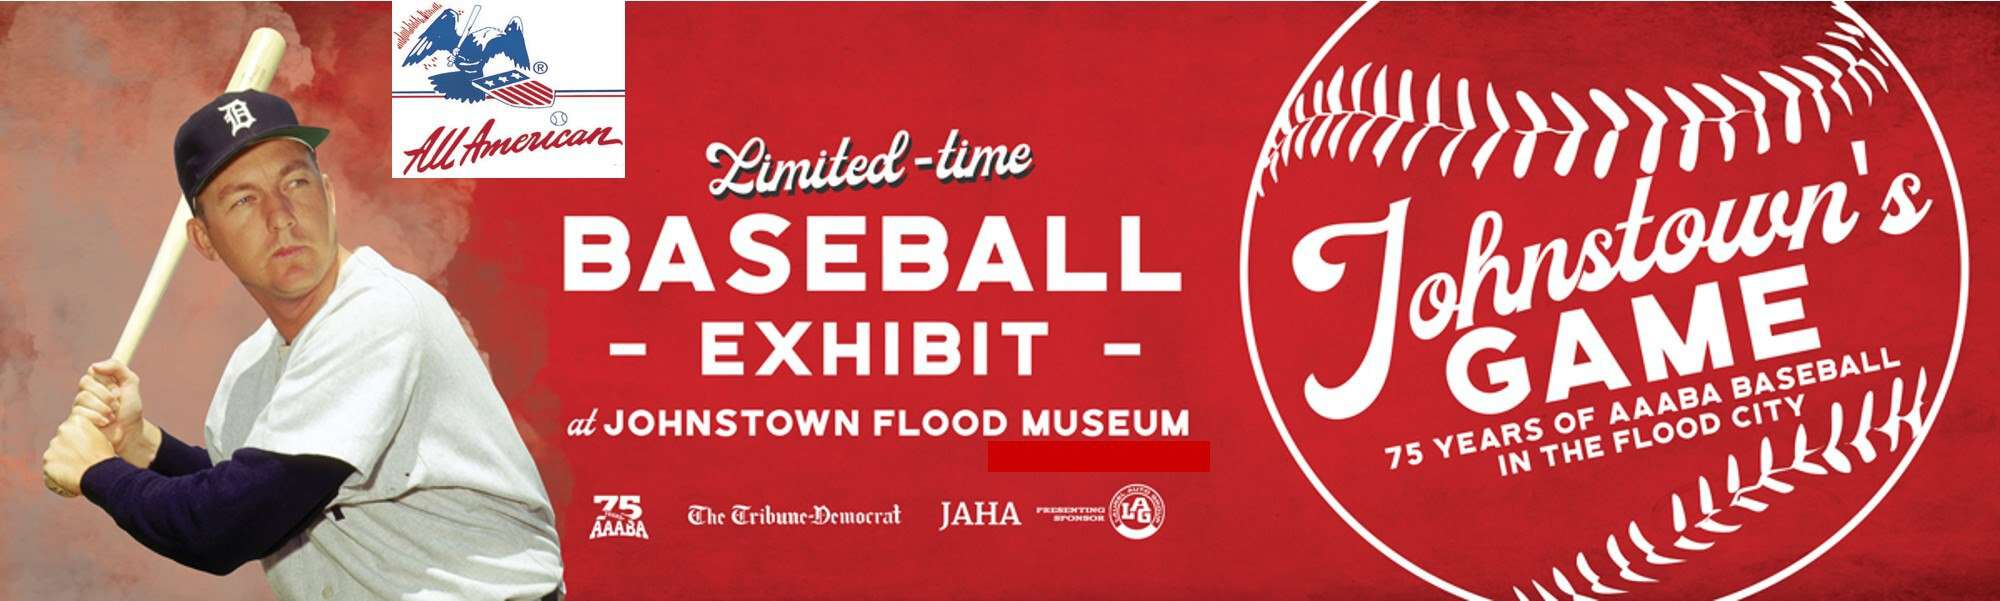 AAABA 75th exhibit